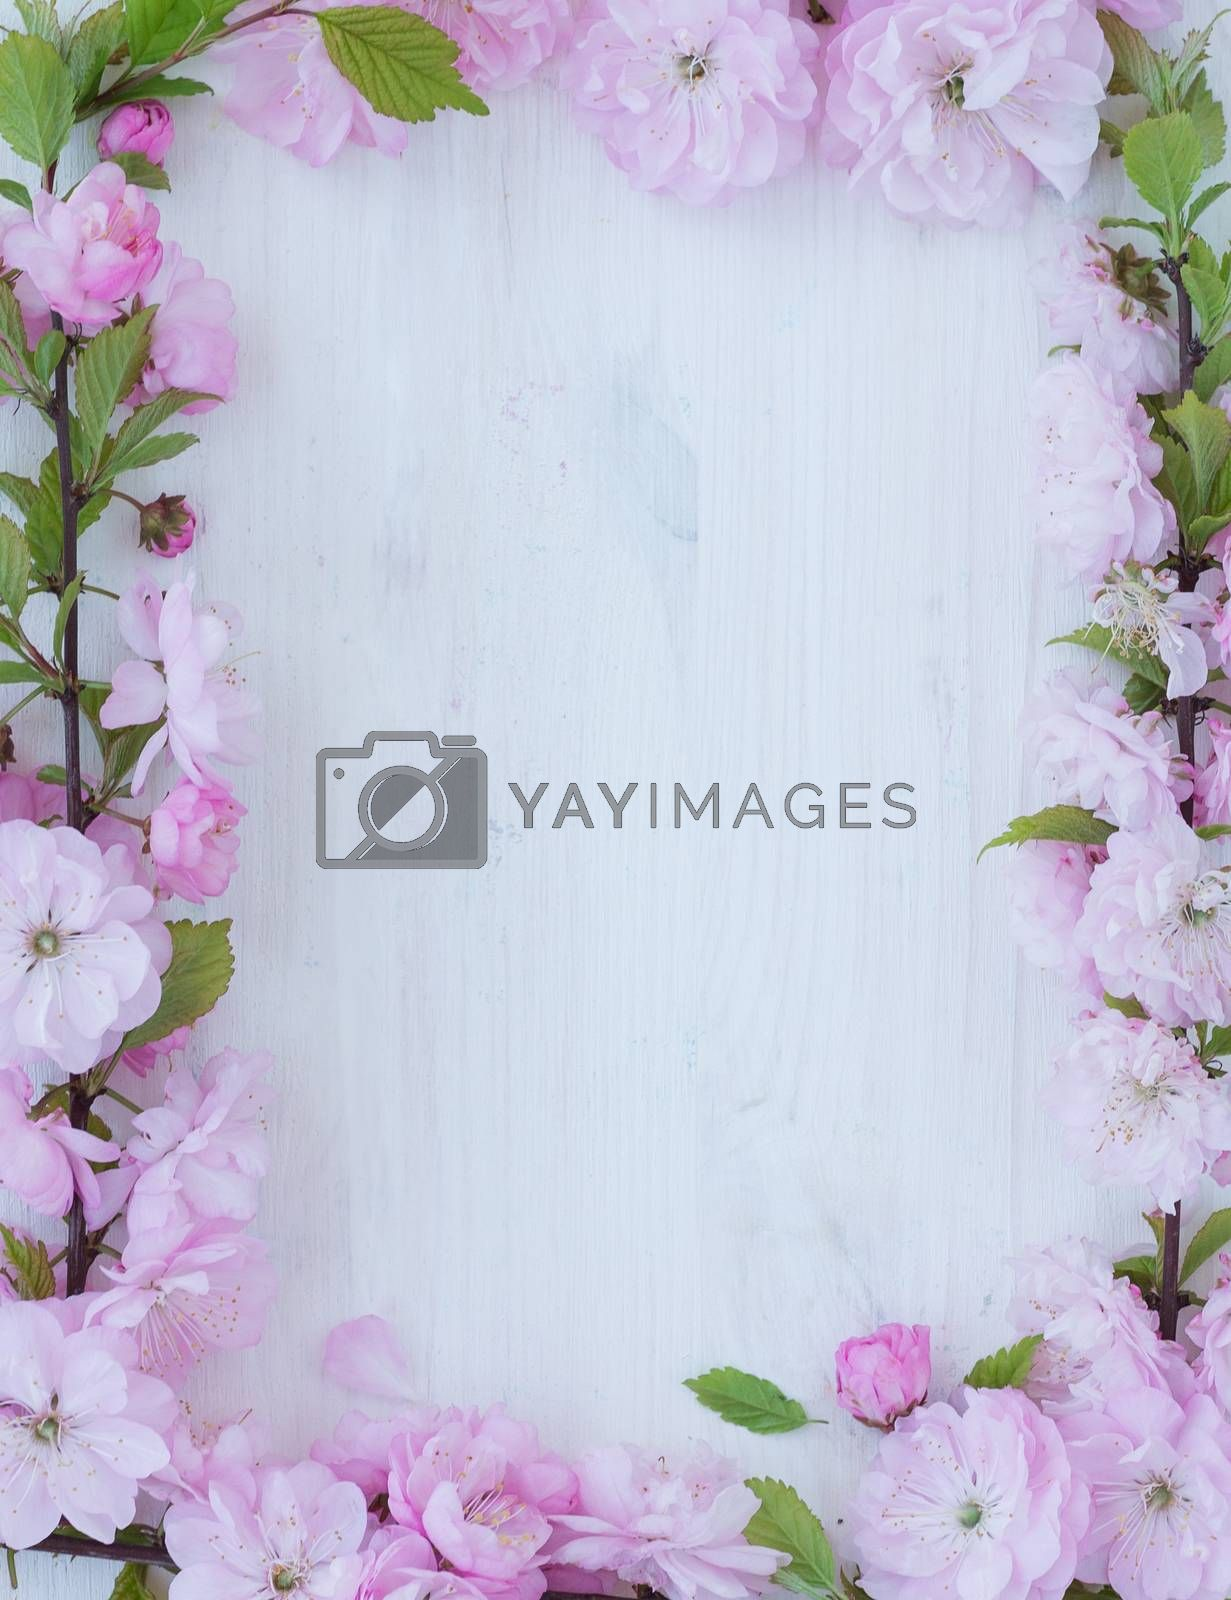 Royalty free image of Flowers frame on wooden background by vlad_star